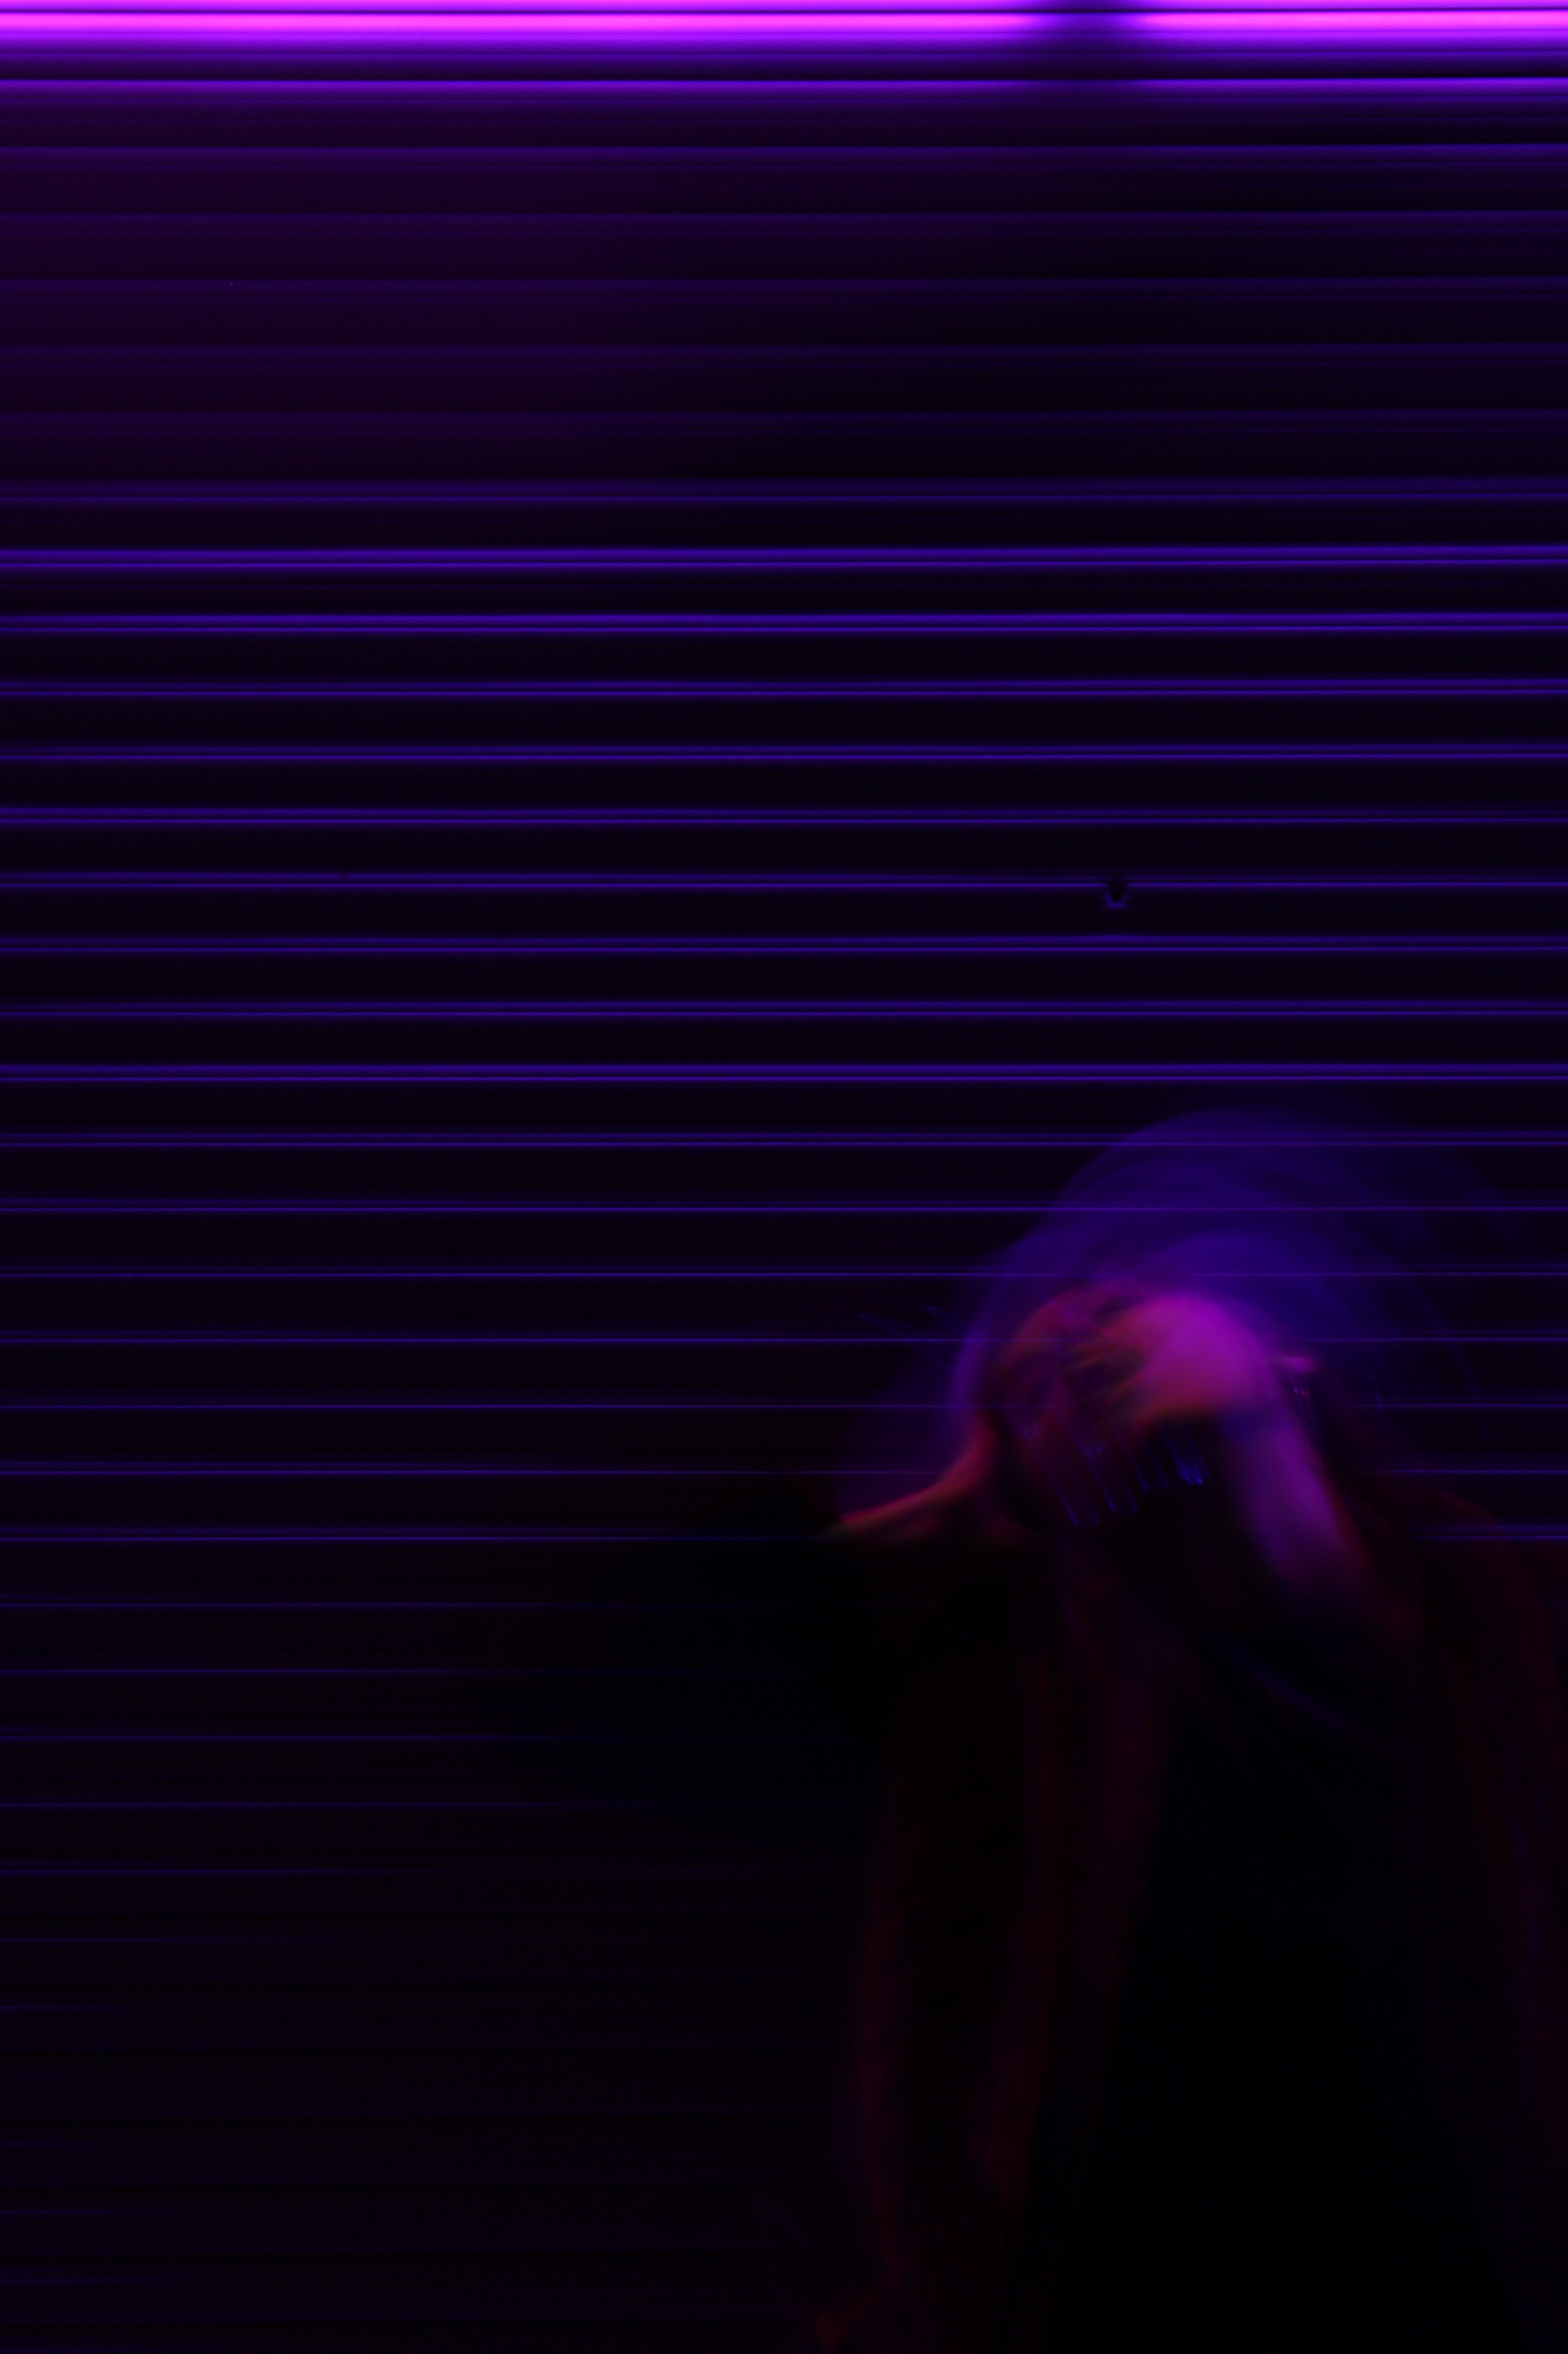 A freaky shot of a woman tilting her head back, standing in front of a garage door at night.